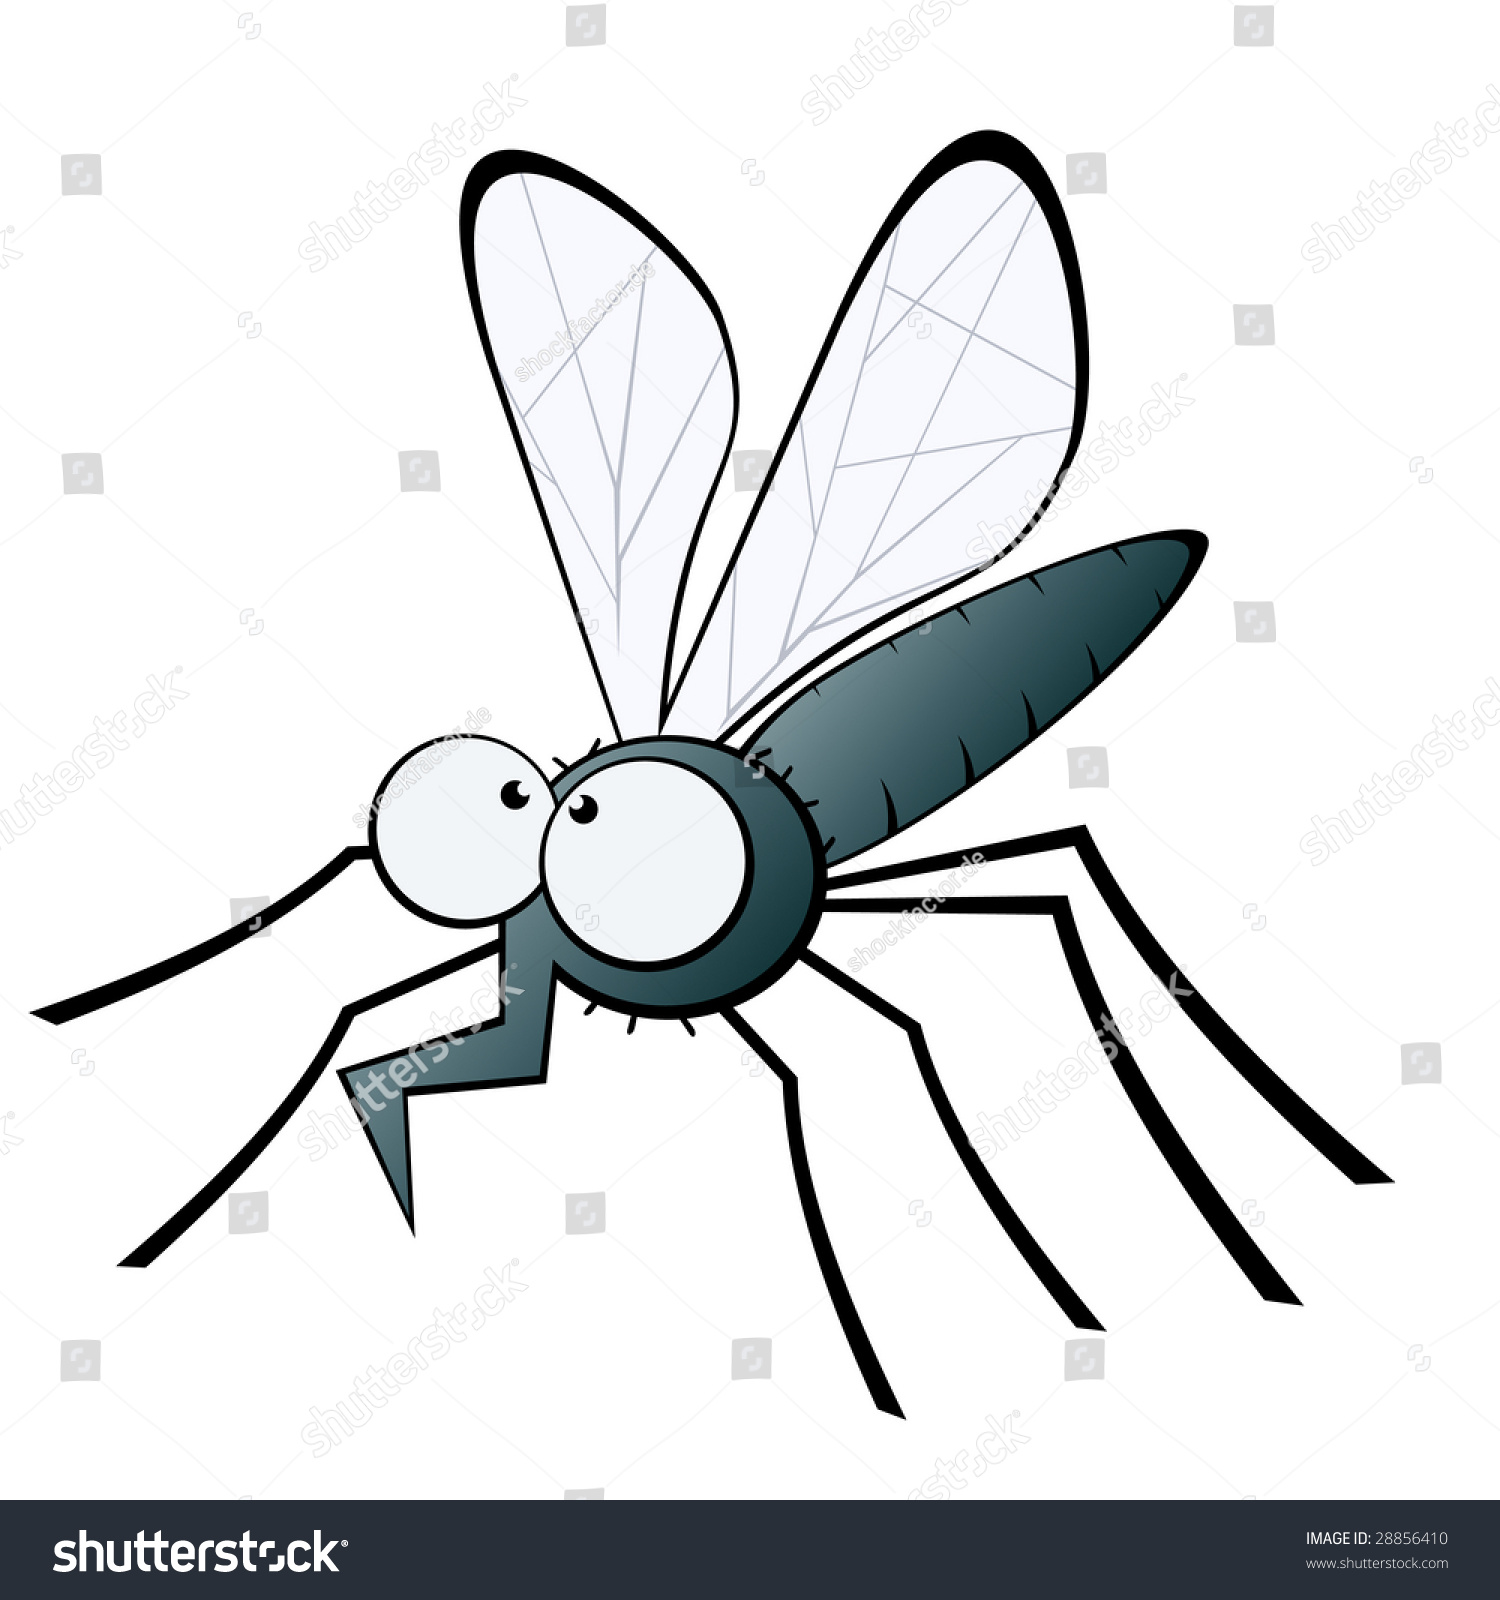 funny mosquito illustration stock vector 28856410 shutterstock